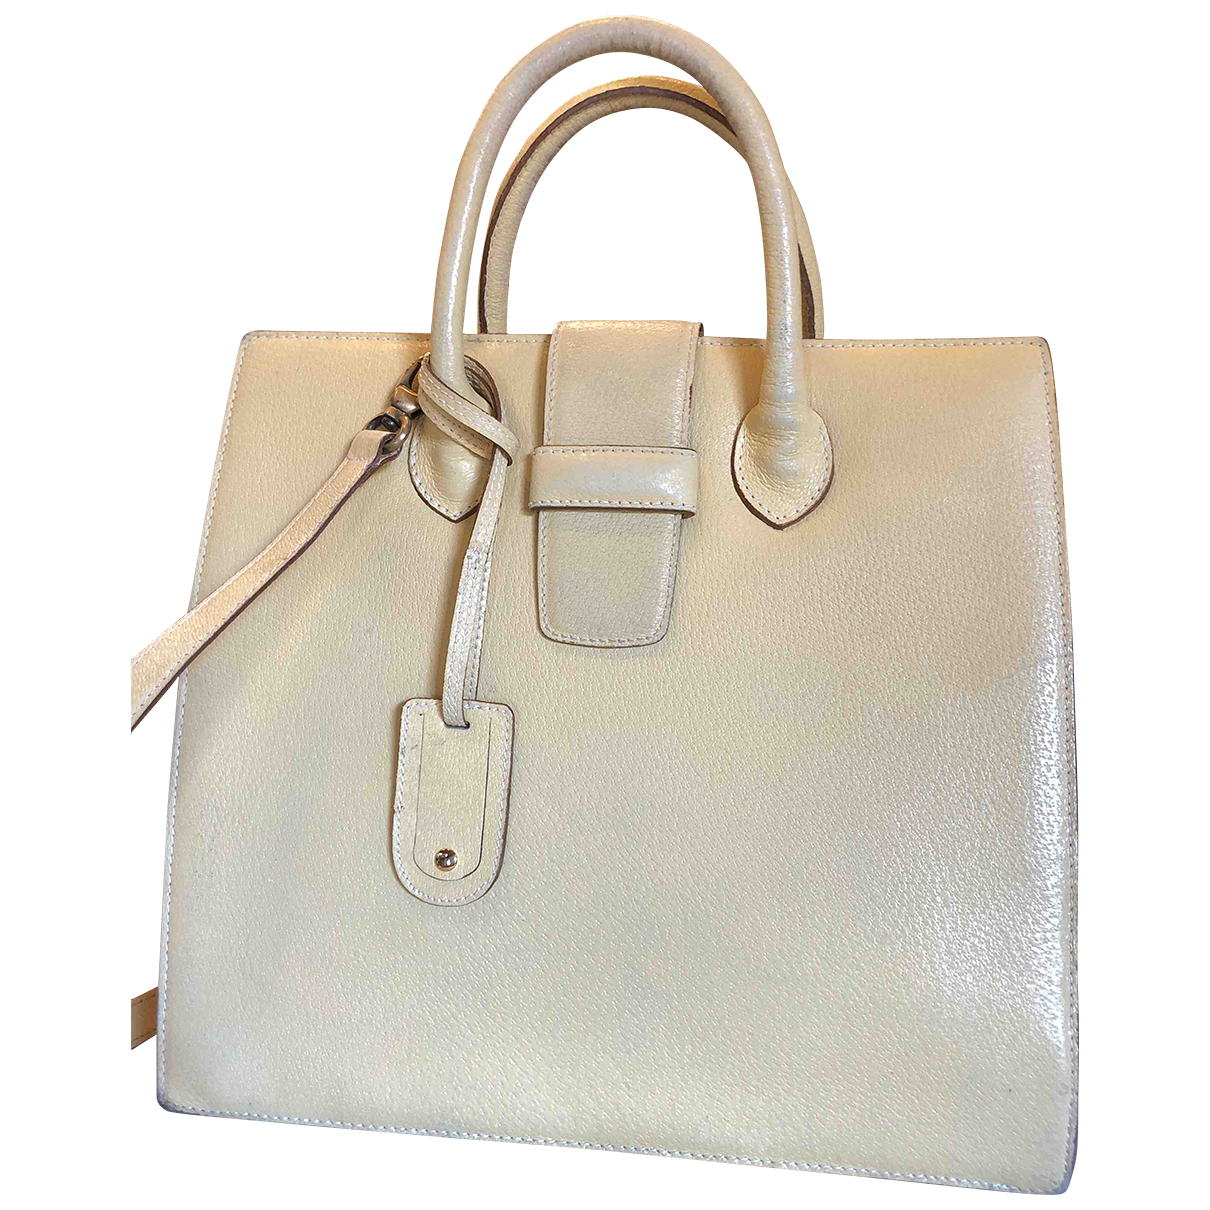 Malo \N Yellow Leather handbag for Women \N